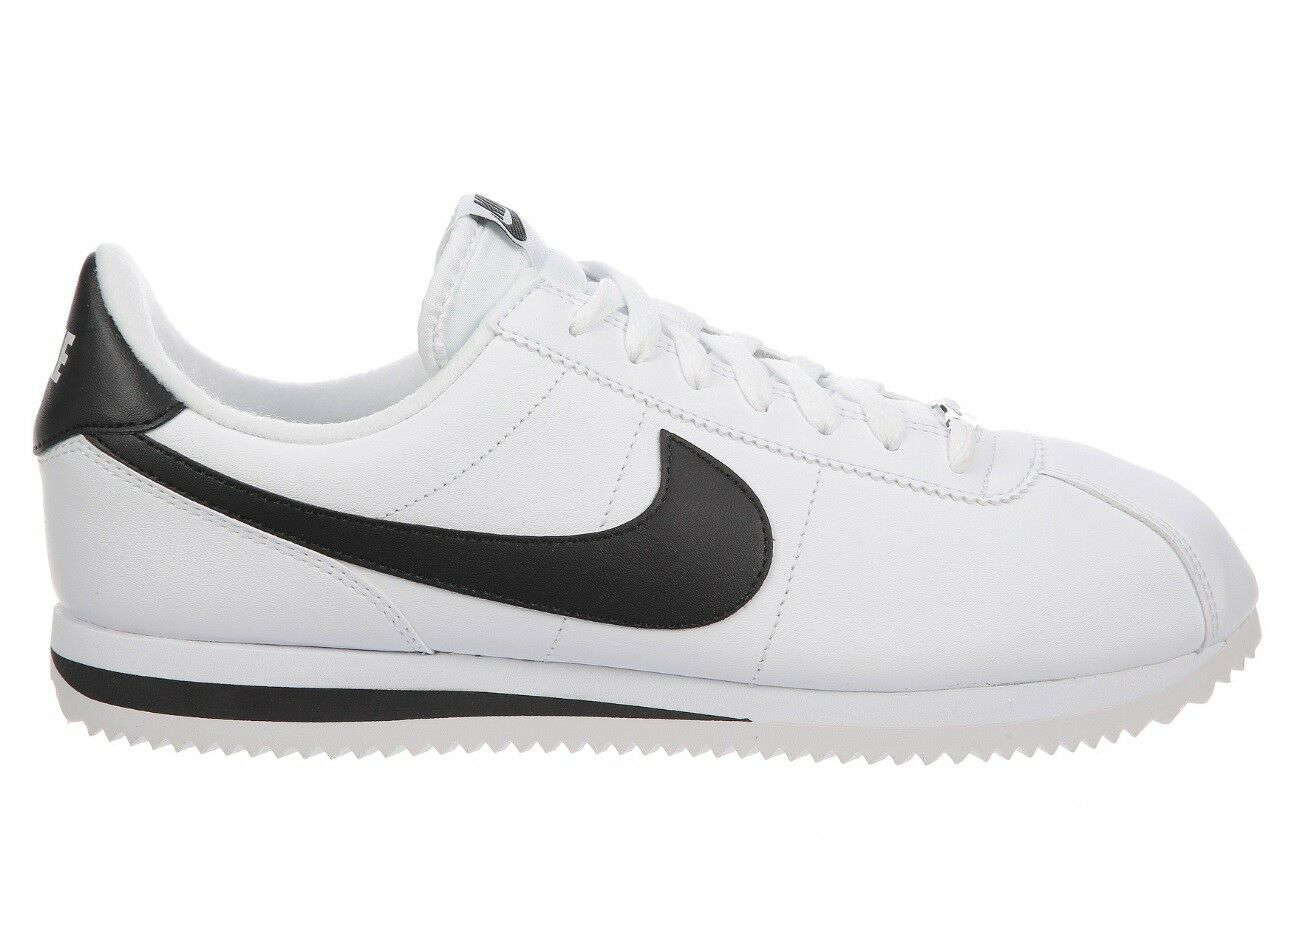 Nike Cortez Basic Leather Mens 819719-100 White Black Running Shoes Comfortable Cheap women's shoes women's shoes Wild casual shoes